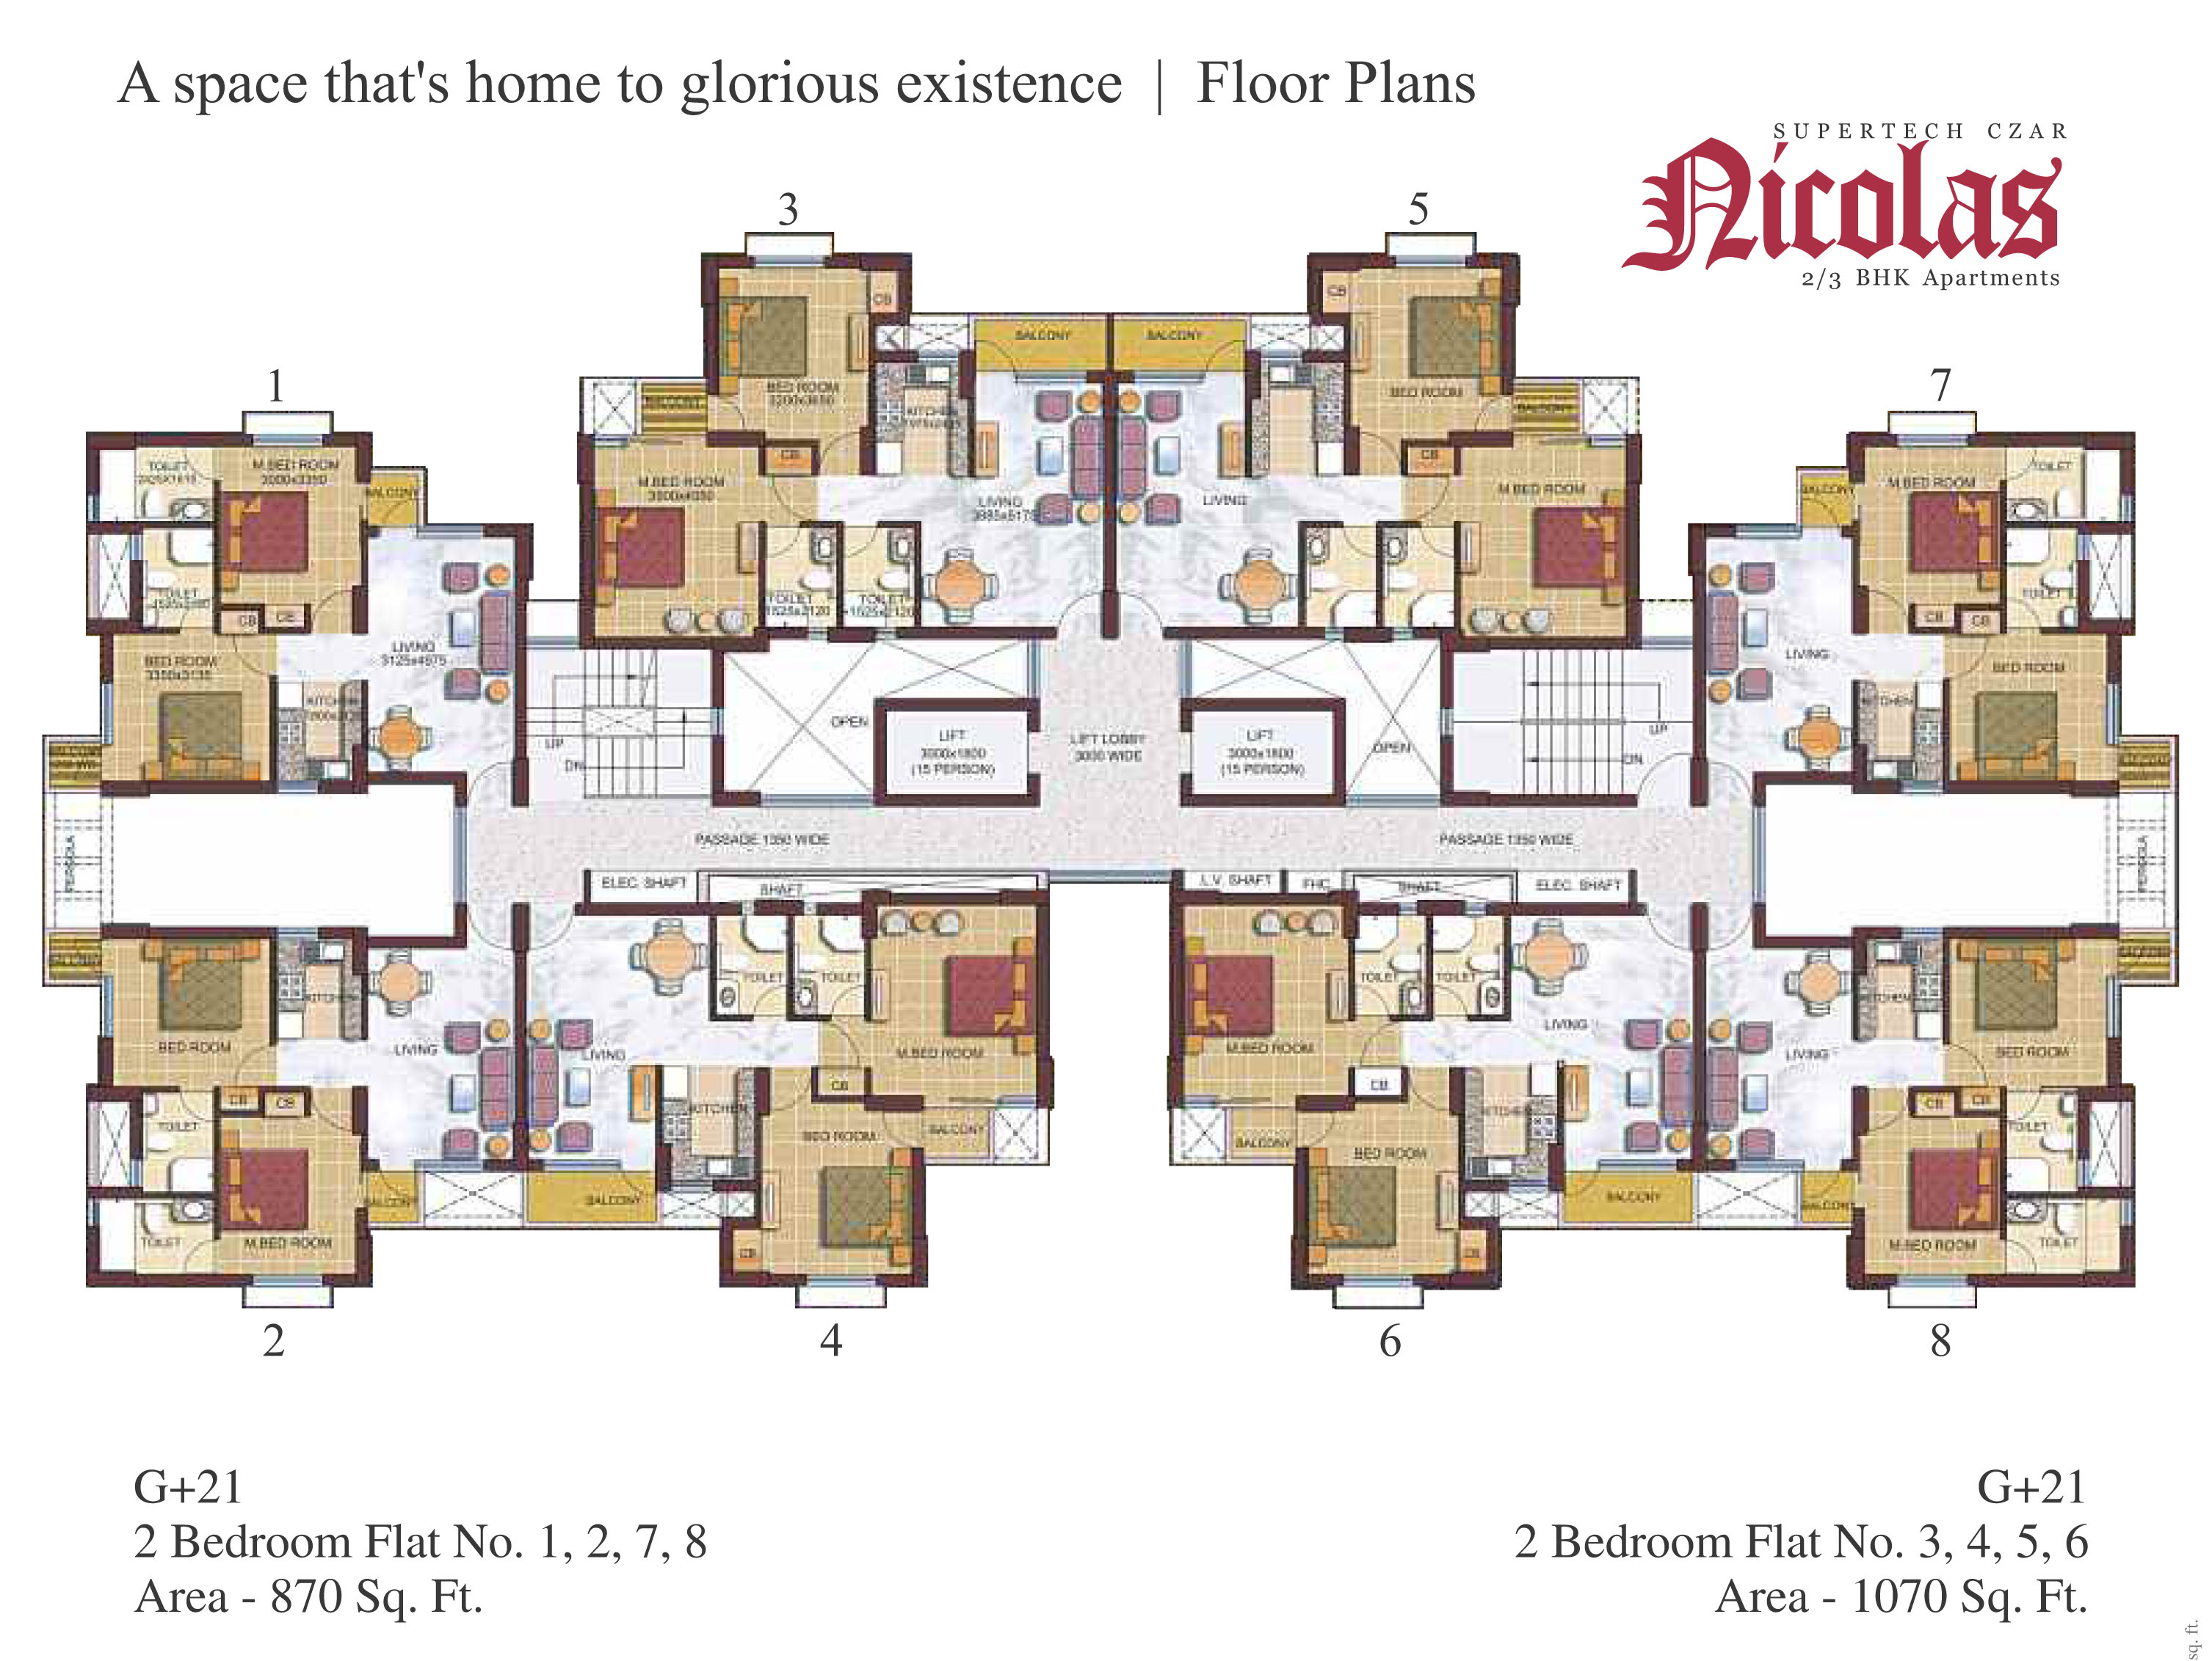 Supertech czar suites greater noida 8010223000 ready for Plan of a flat